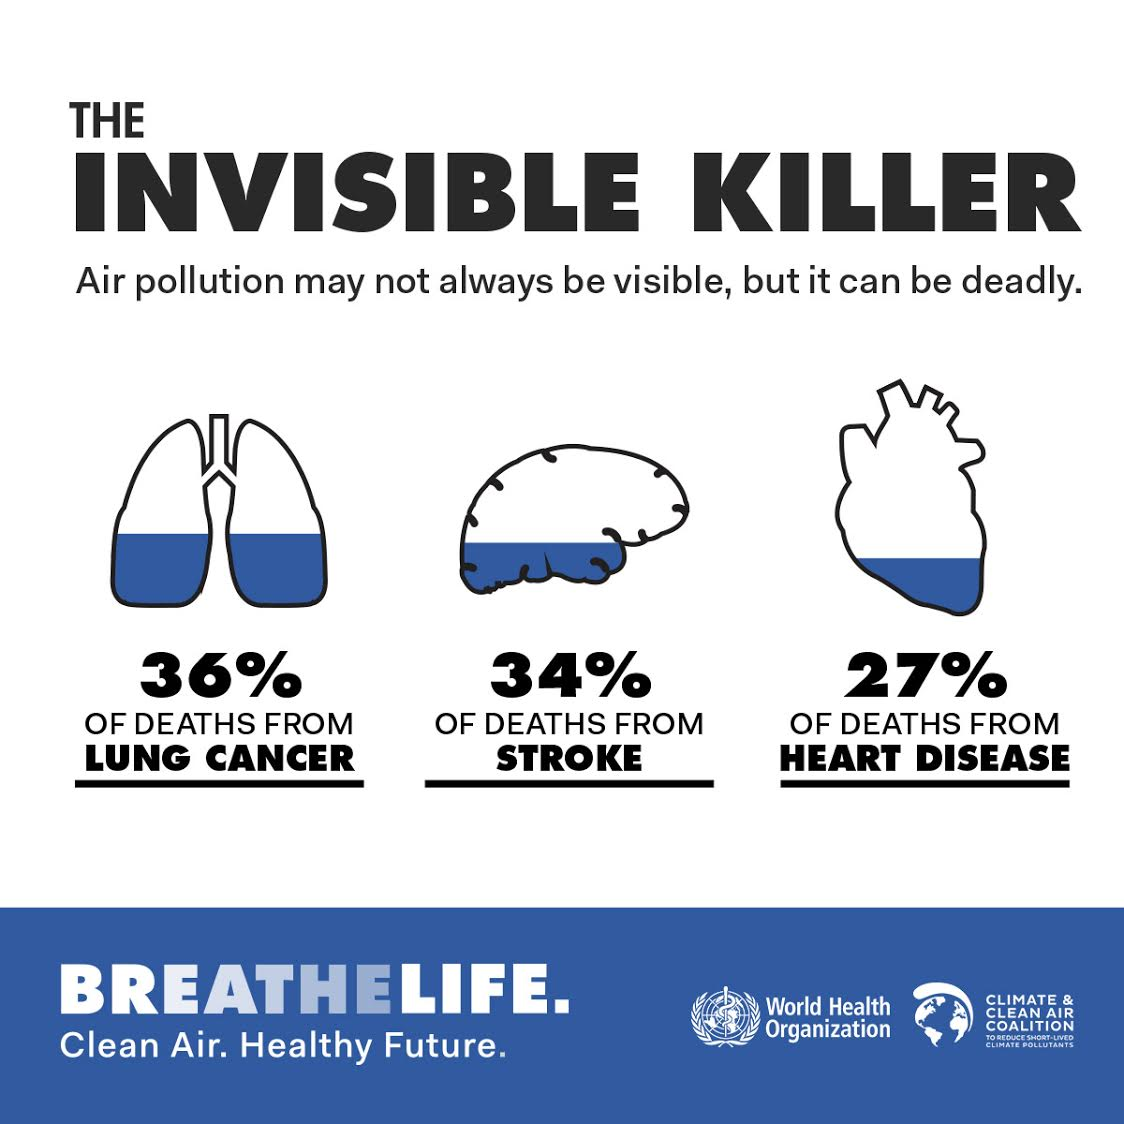 #AirPollution is an invisible killer. We may not always see it, but it can be deadly. #BreatheLife